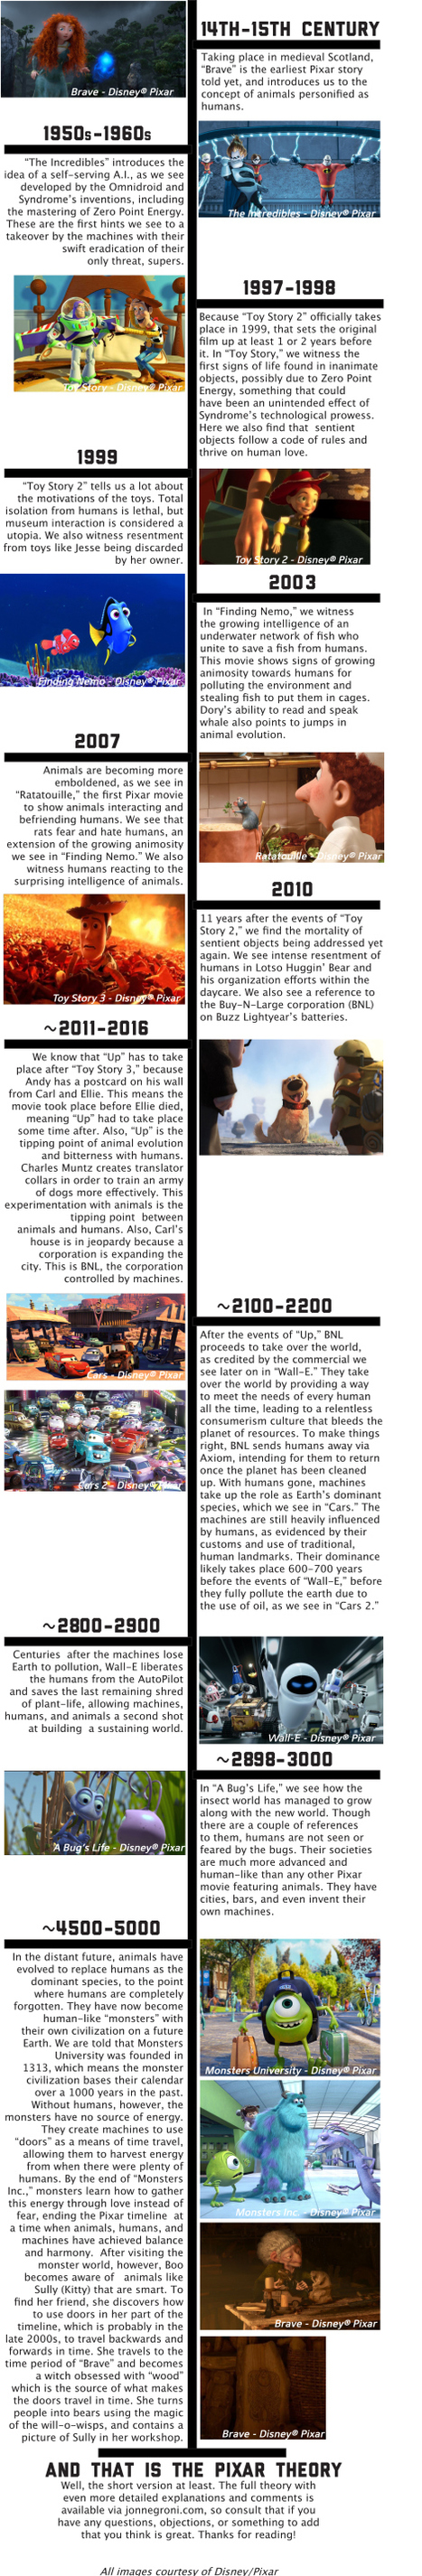 The Pixar Theory Timeline | Social and digital network | Scoop.it